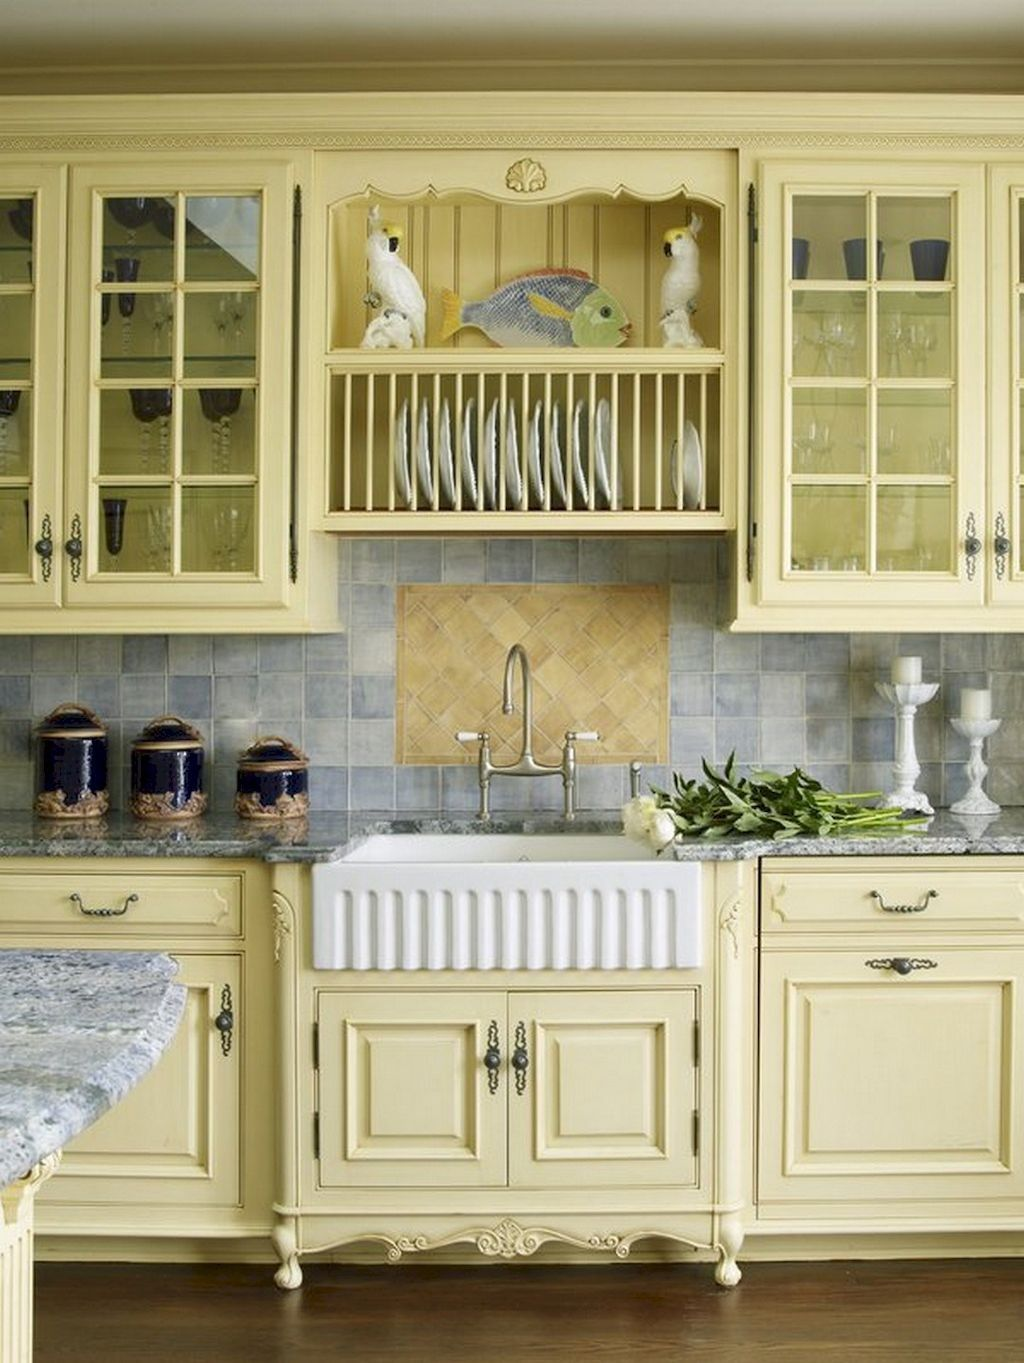 Farmhouse Country Kitchen Designs: 35 Exceptional French Country Kitchen Design Ideas